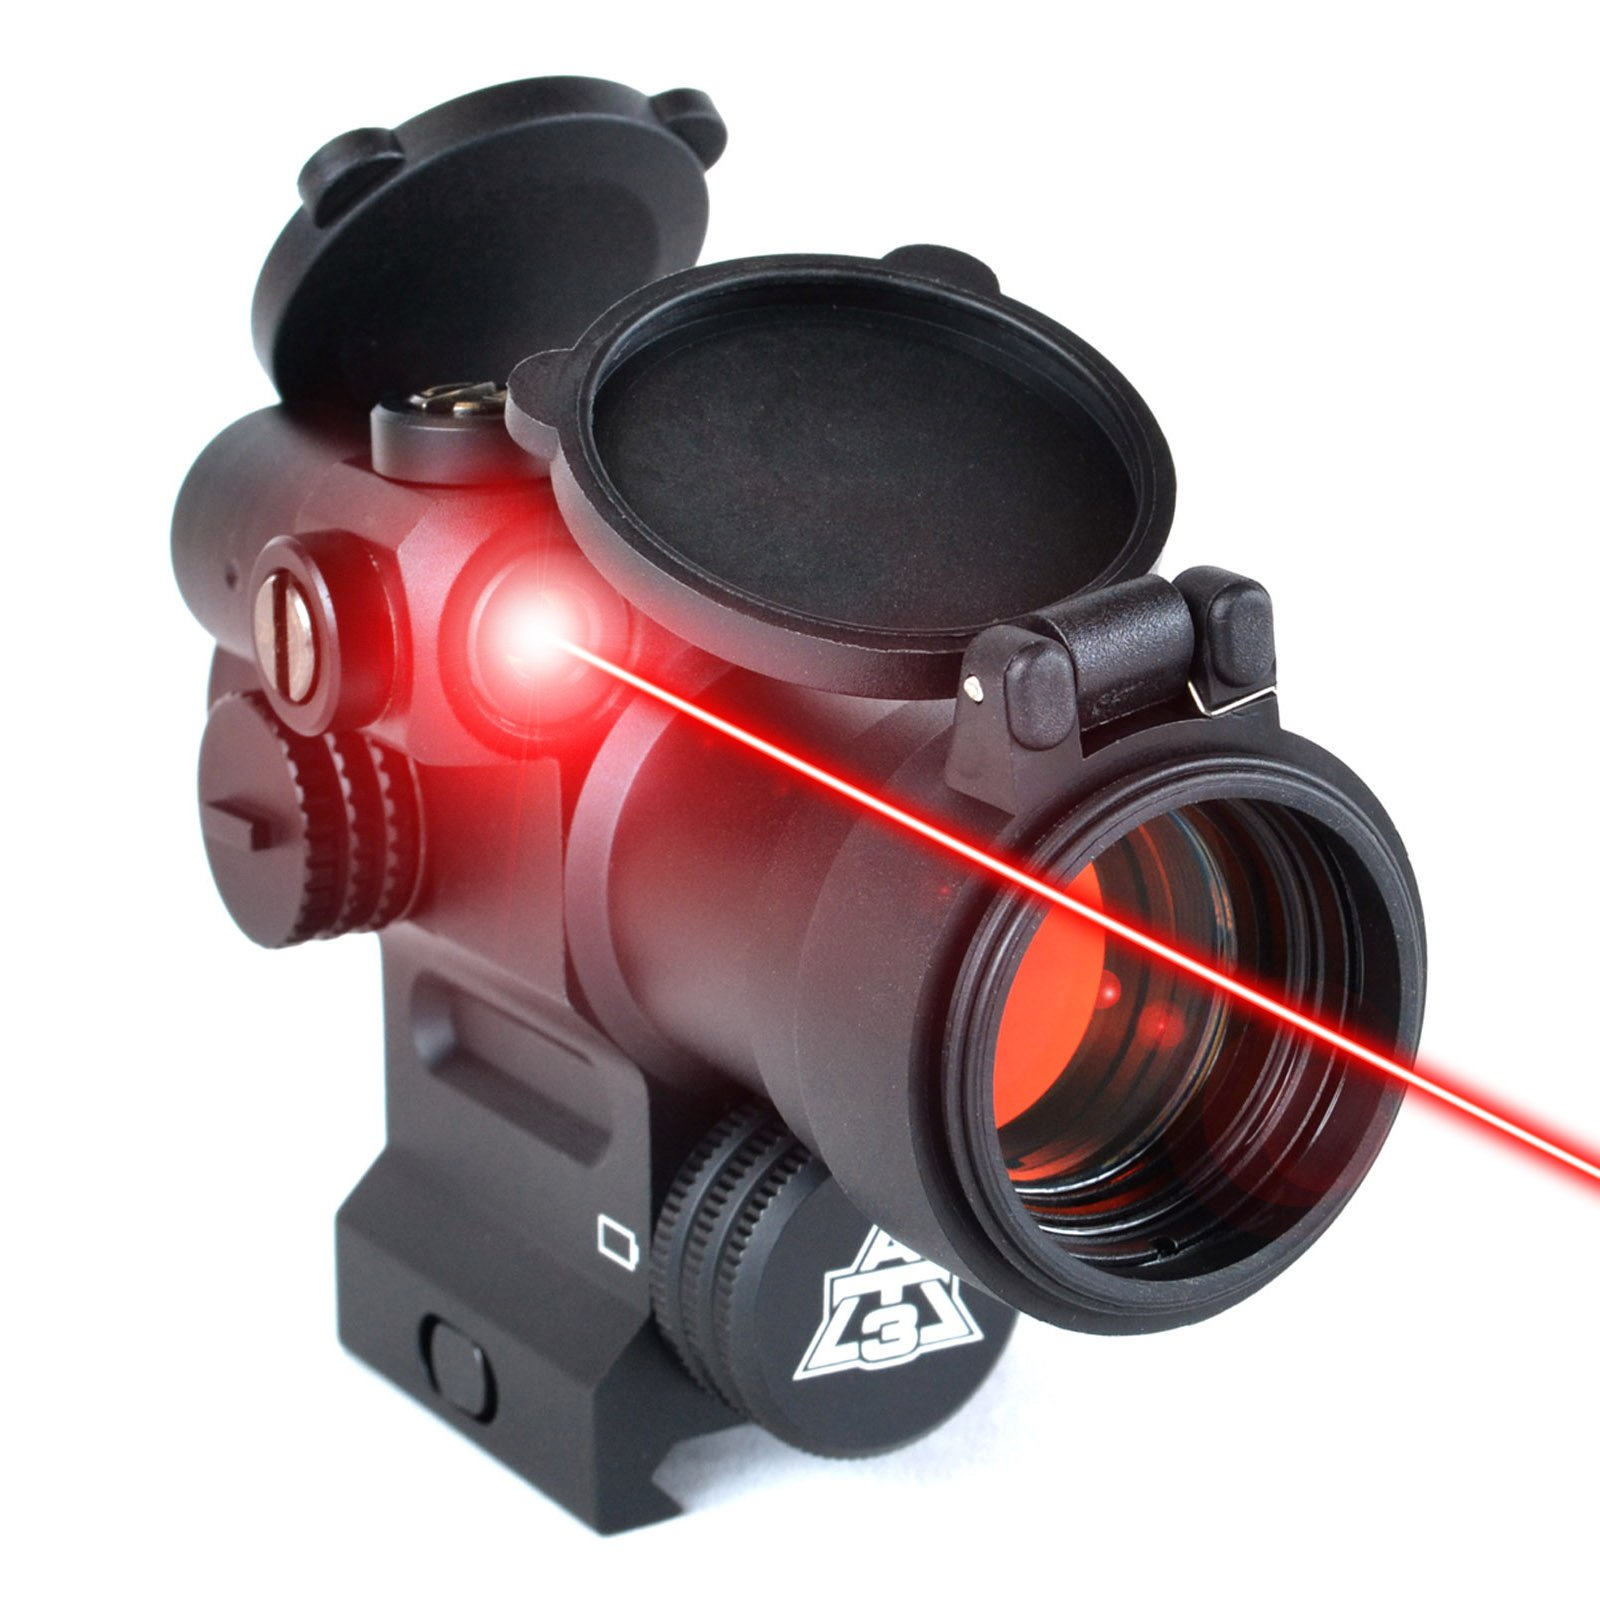 AT3 LEOS Red Dot Sight with Integrated Laser & Riser - 2 MOA Red Dot Scope with Flip Up Lens Caps by AT3 Tactical